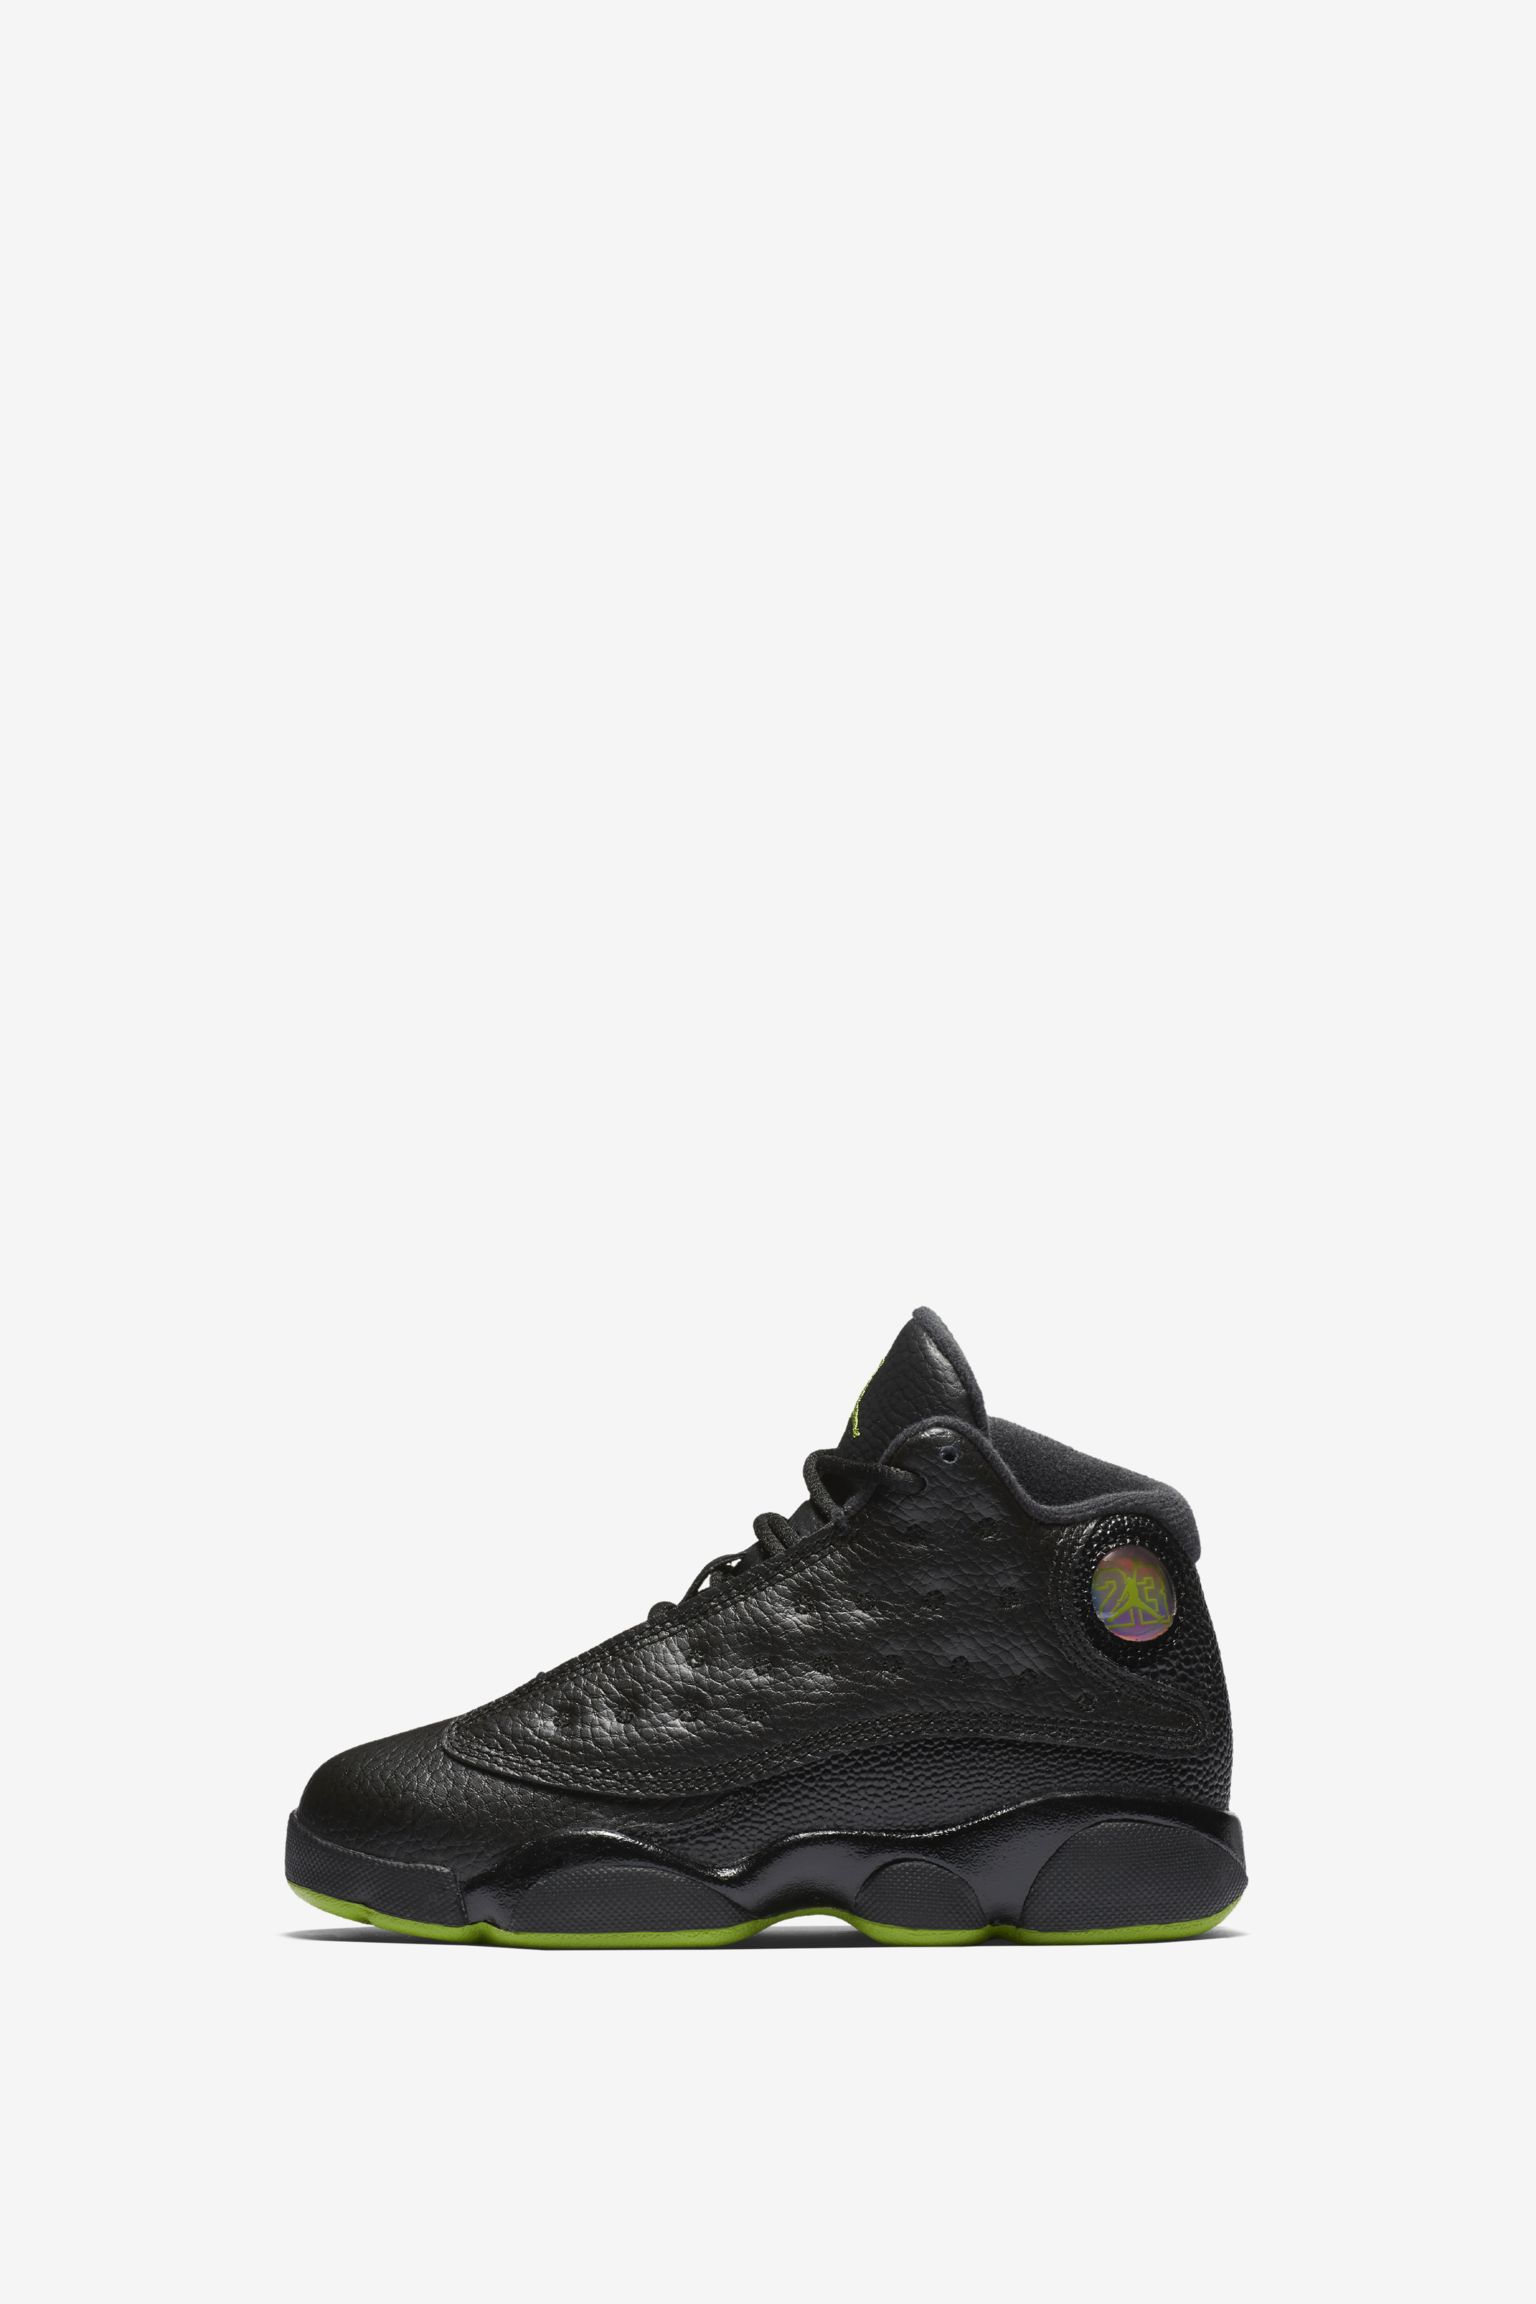 fbd90f720aced9 amazon air jordan 13 green d2964 29854